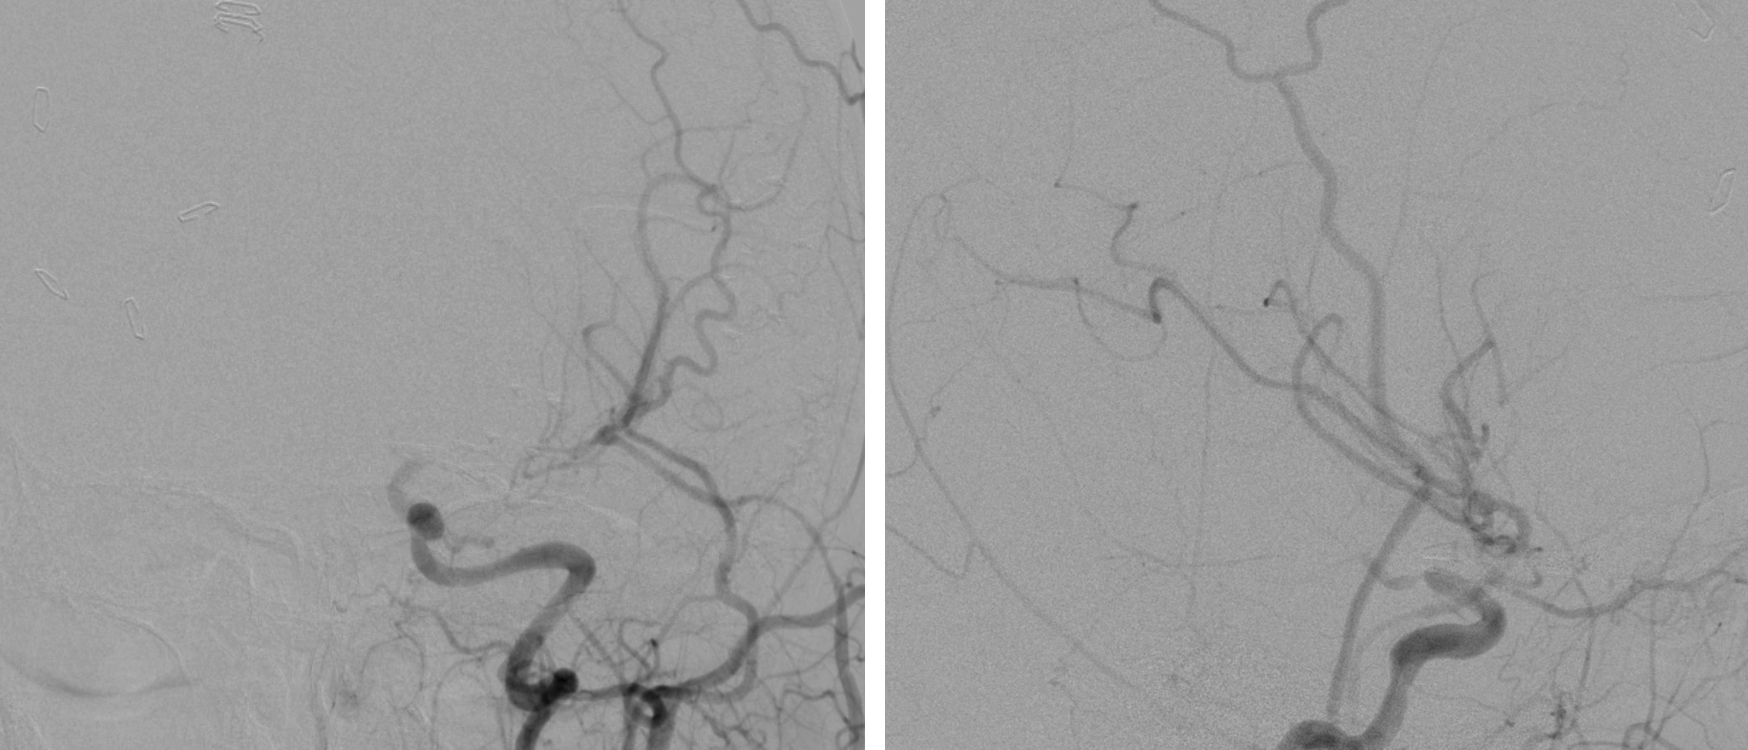 Figure 11: The postoperative angiogram images for the patient in Figure 1 demonstrate a patent interposition graft and exclusion of the aneurysm.